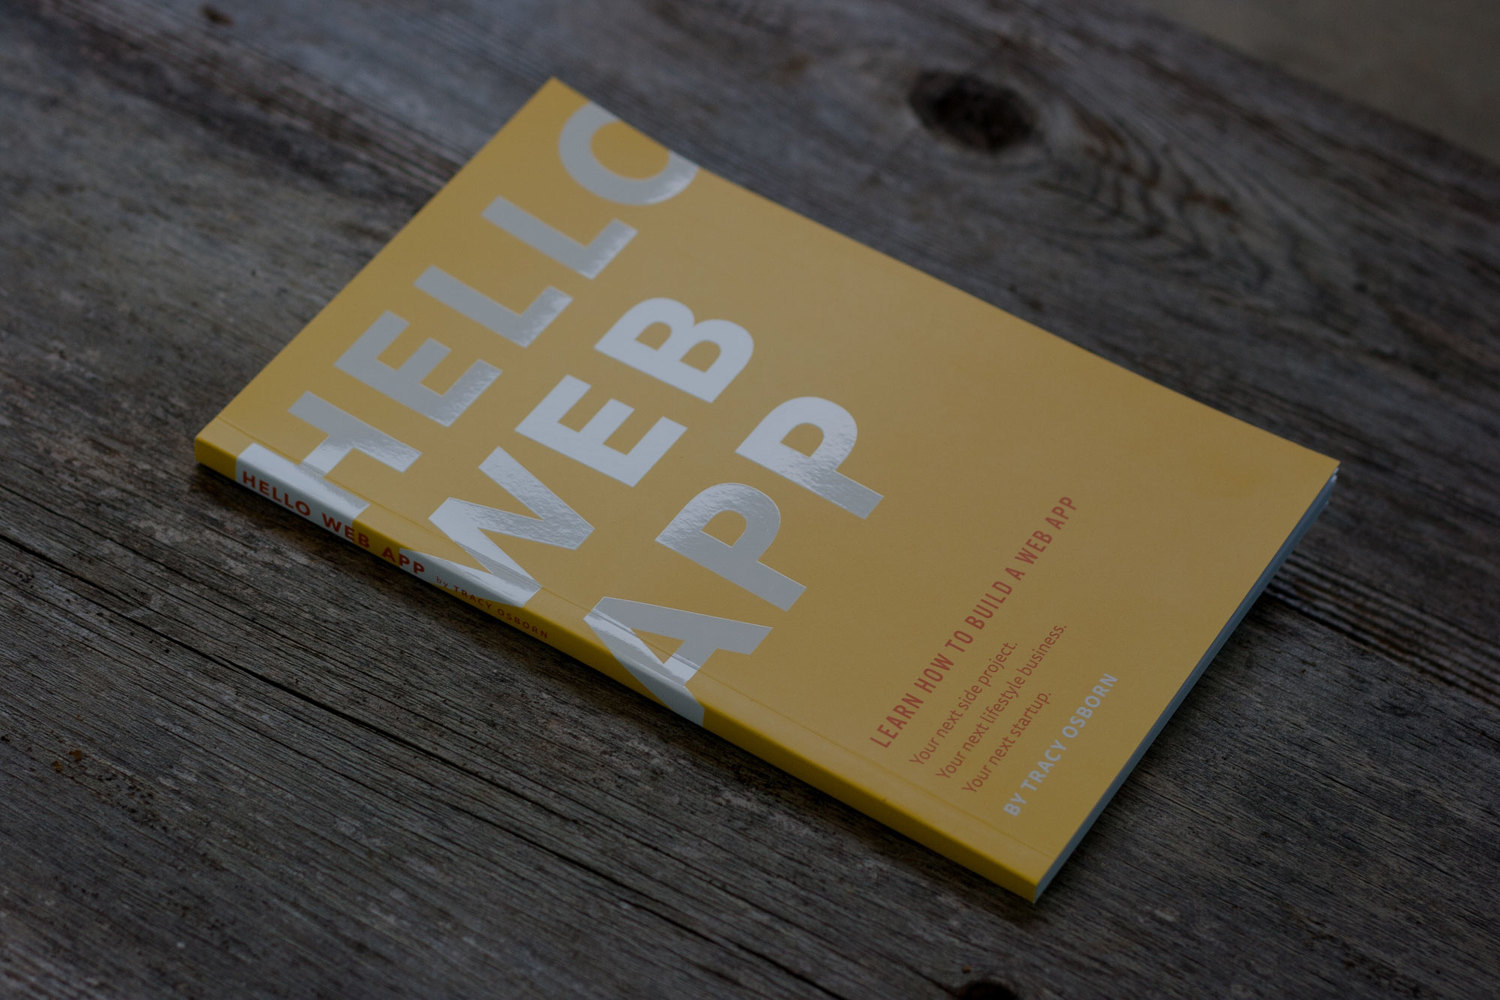 Designing and printing Hello Web App's PDF and paperback editions